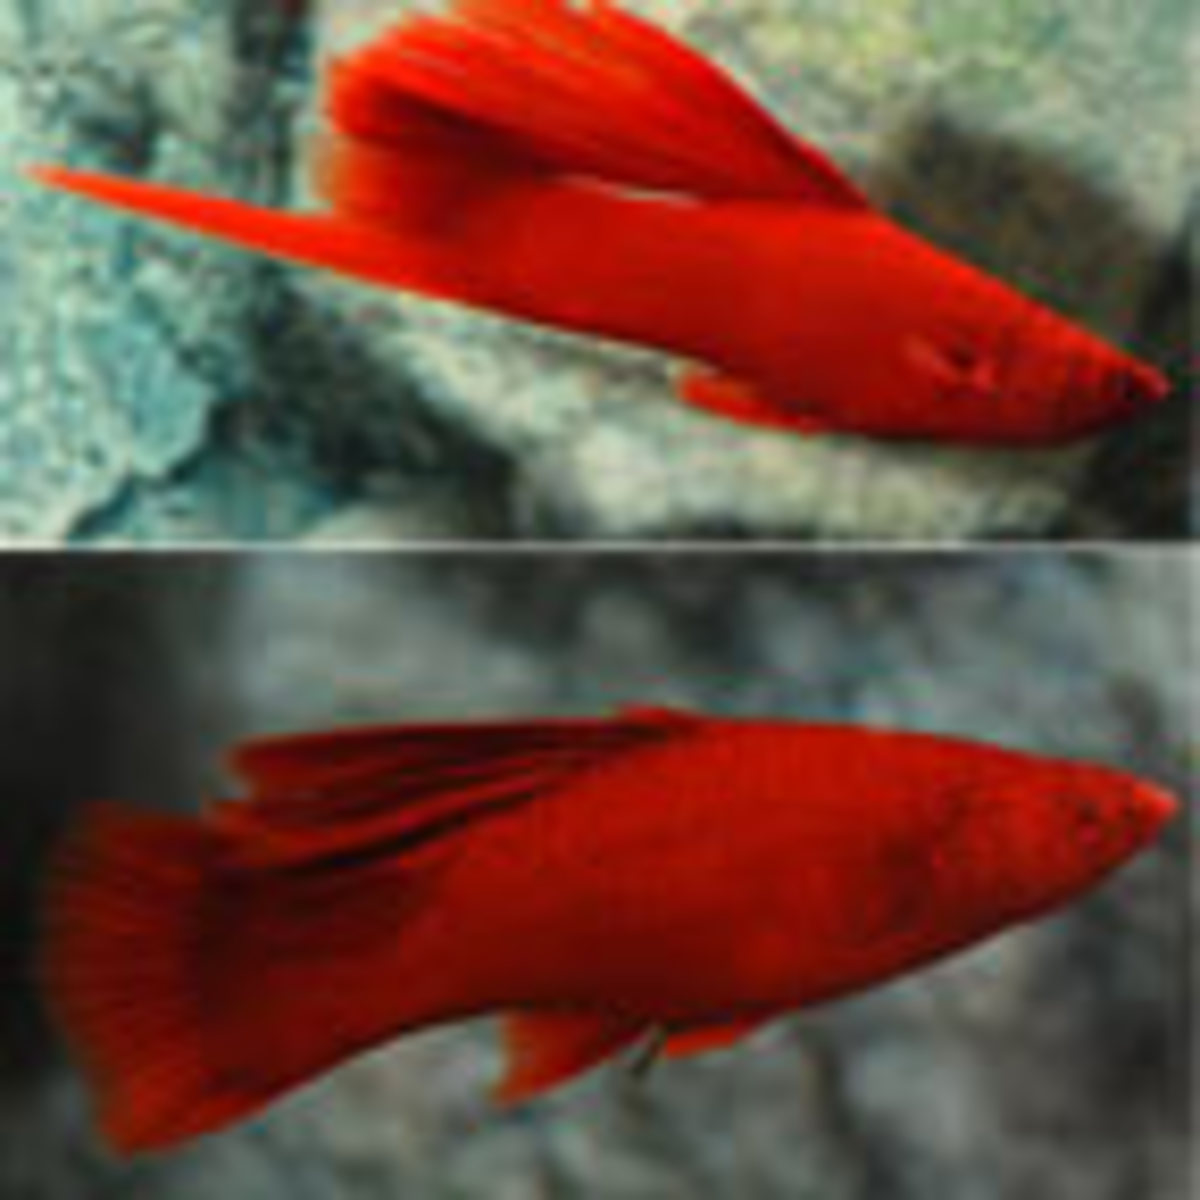 Red swordtails, like this hybrid species, shown in the photo, can brighten up any freshwater aquarium. It is a good fish type to introduce along with their close cousin the platy, as well as adding a few black mollies.